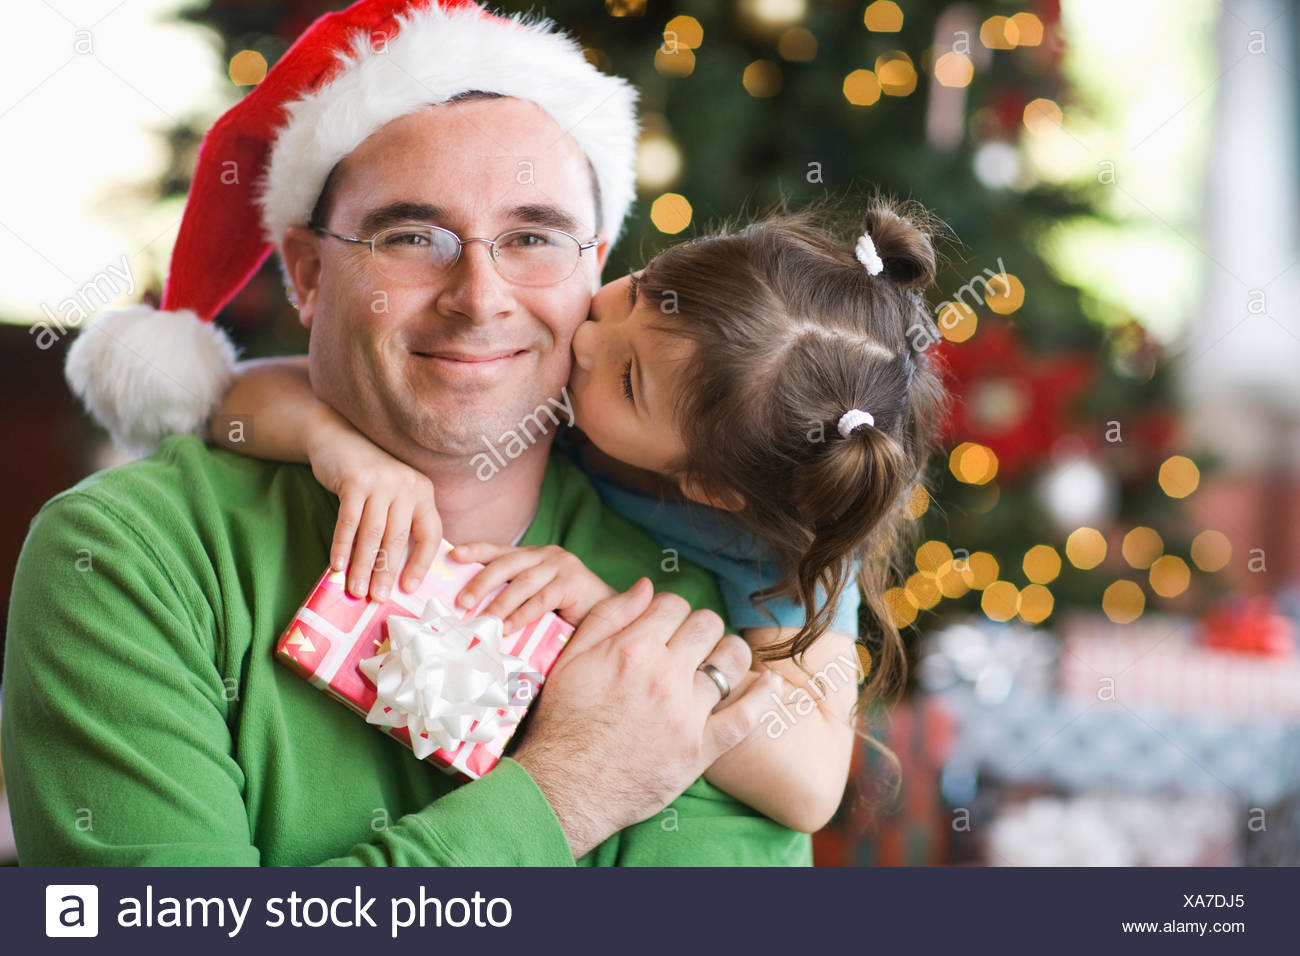 A Man And Girl Father Daughter Hugging Exchanging Presents By